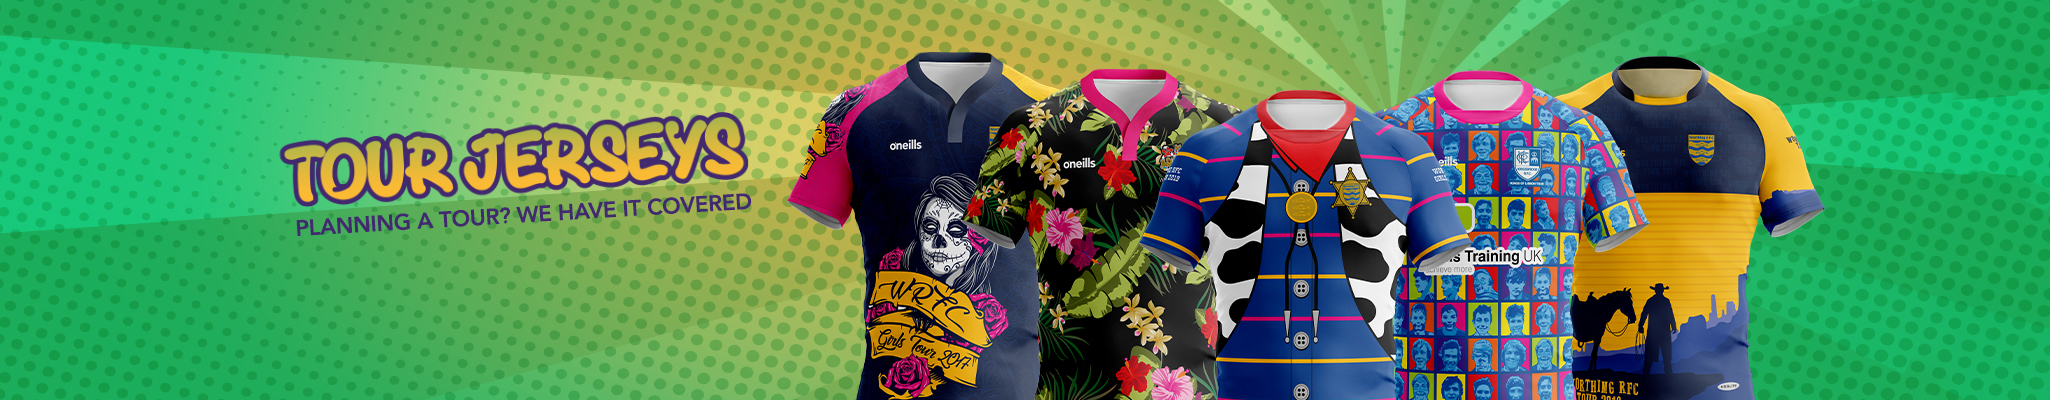 Tour Jerseys